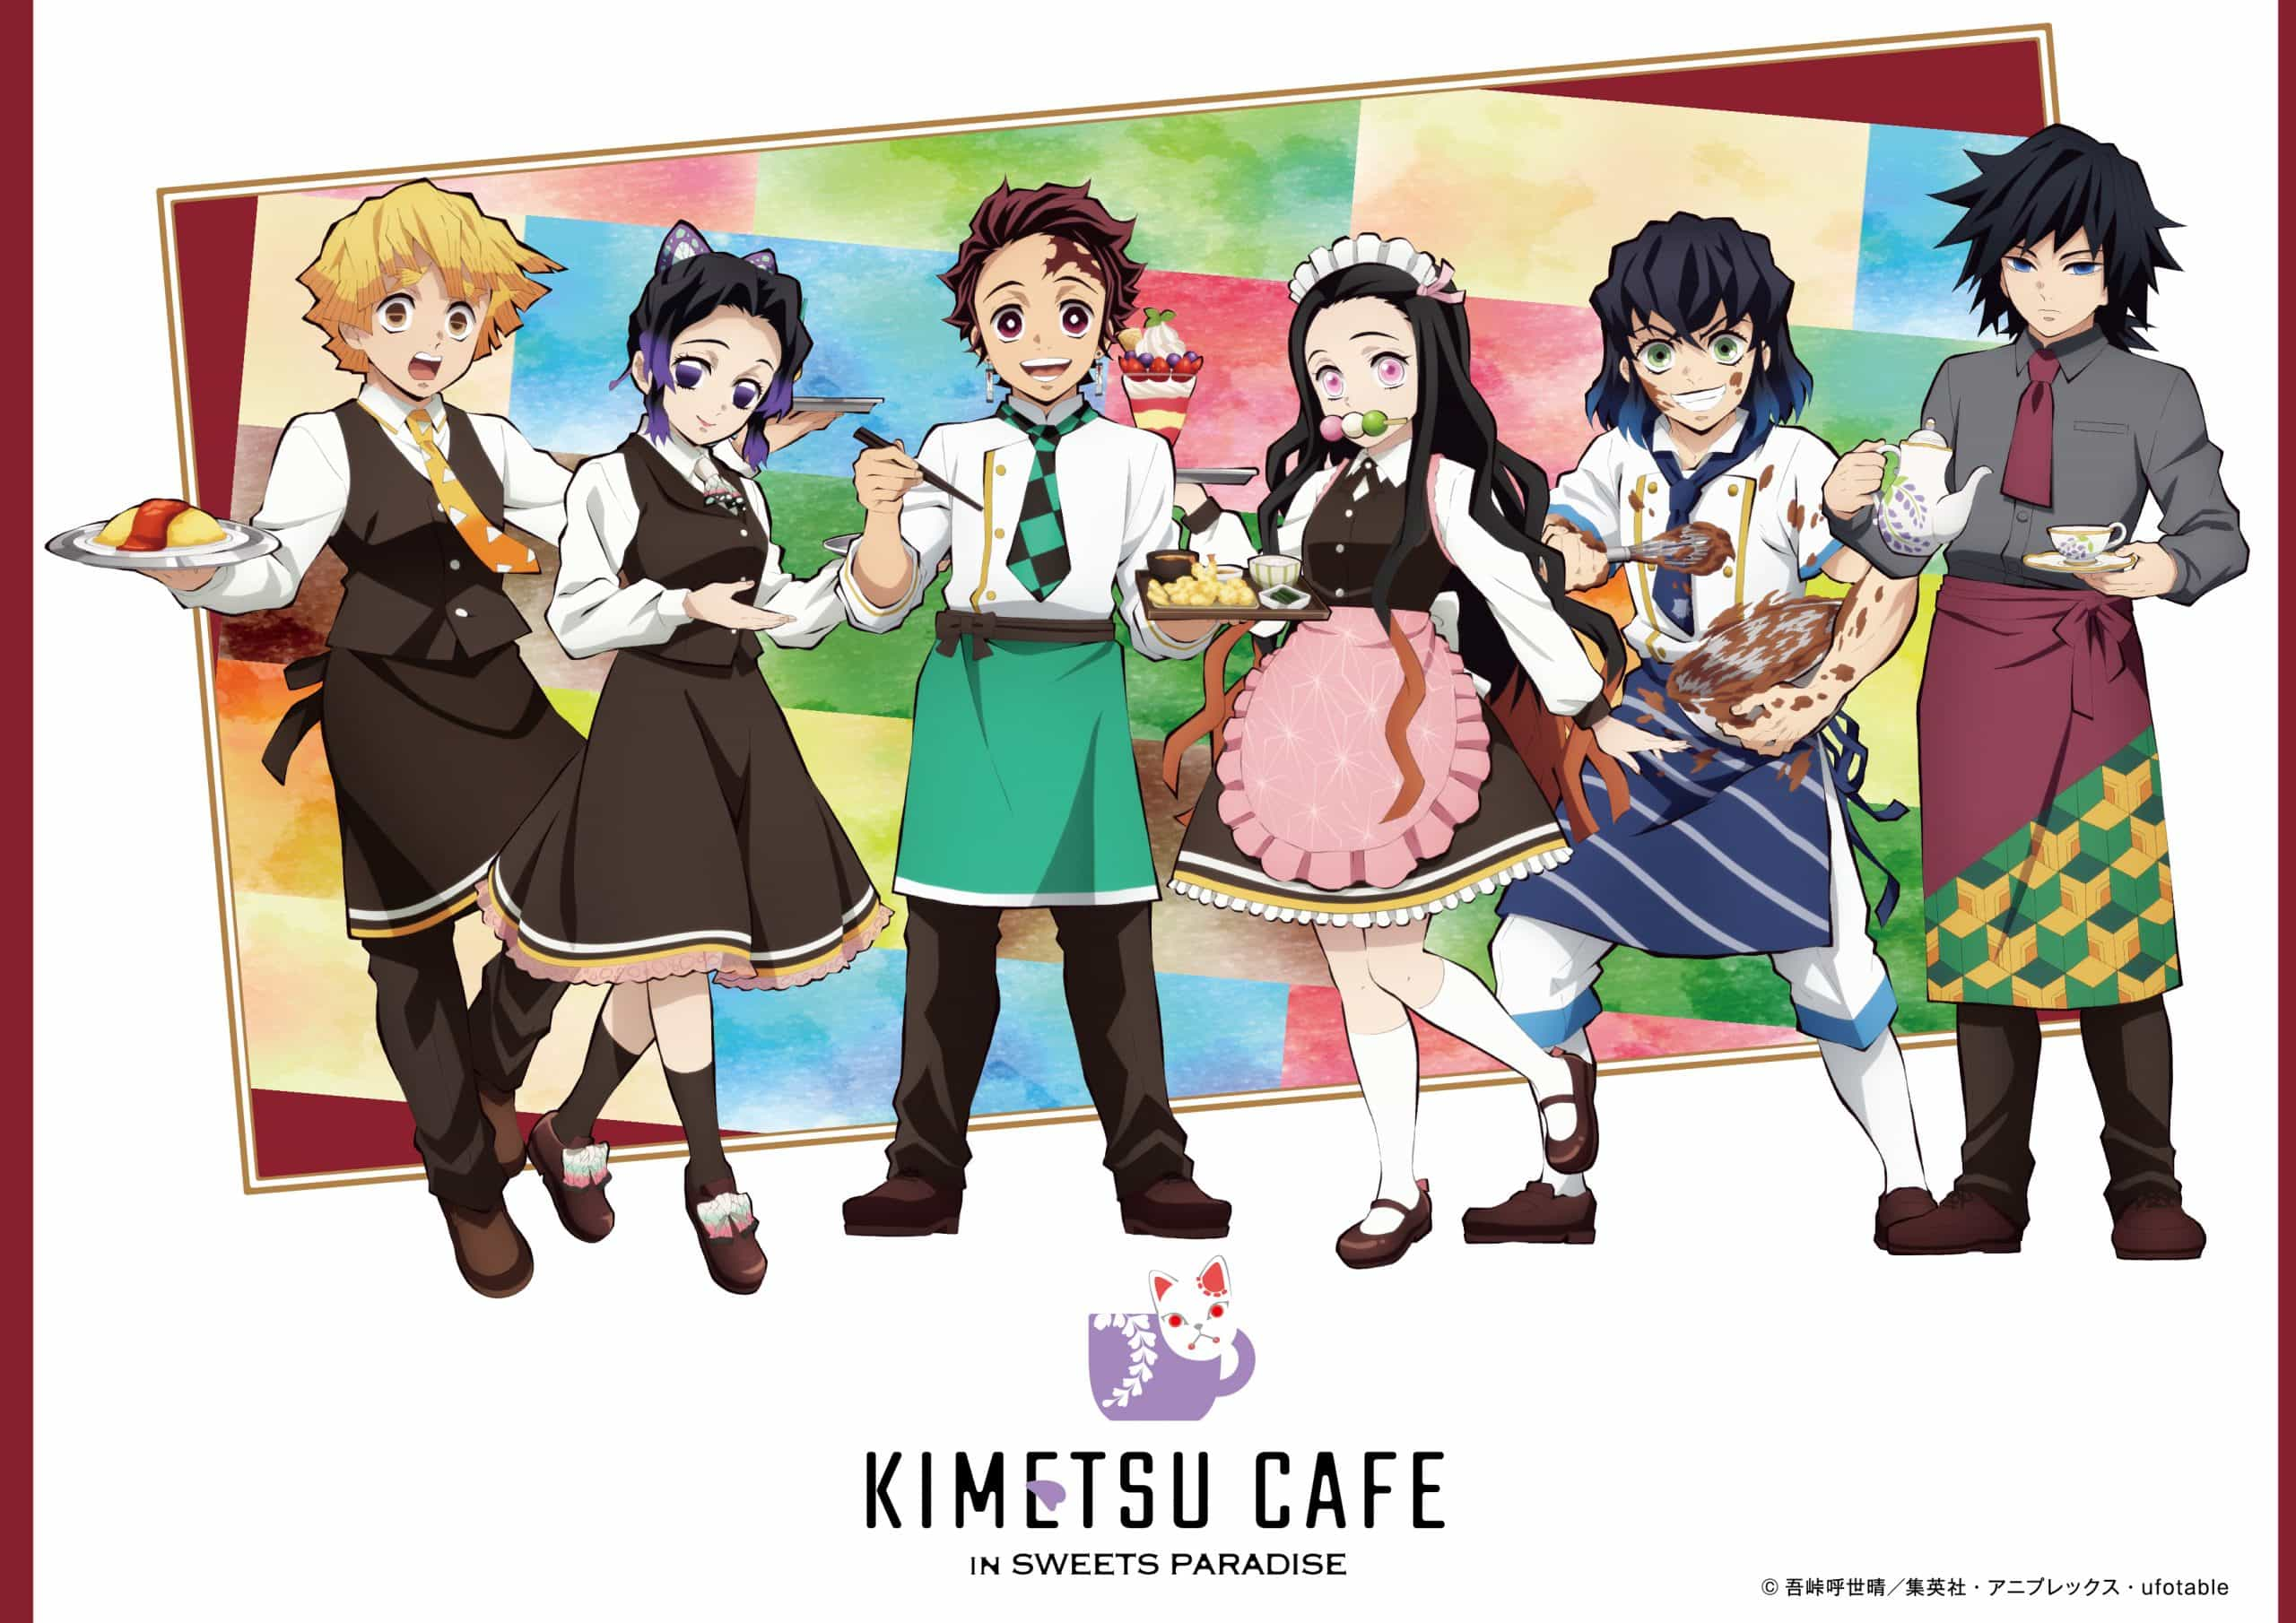 KIMETSU CAFE in SWEETS PARADISE: Demon Slayer's Theme Cafe in Japan